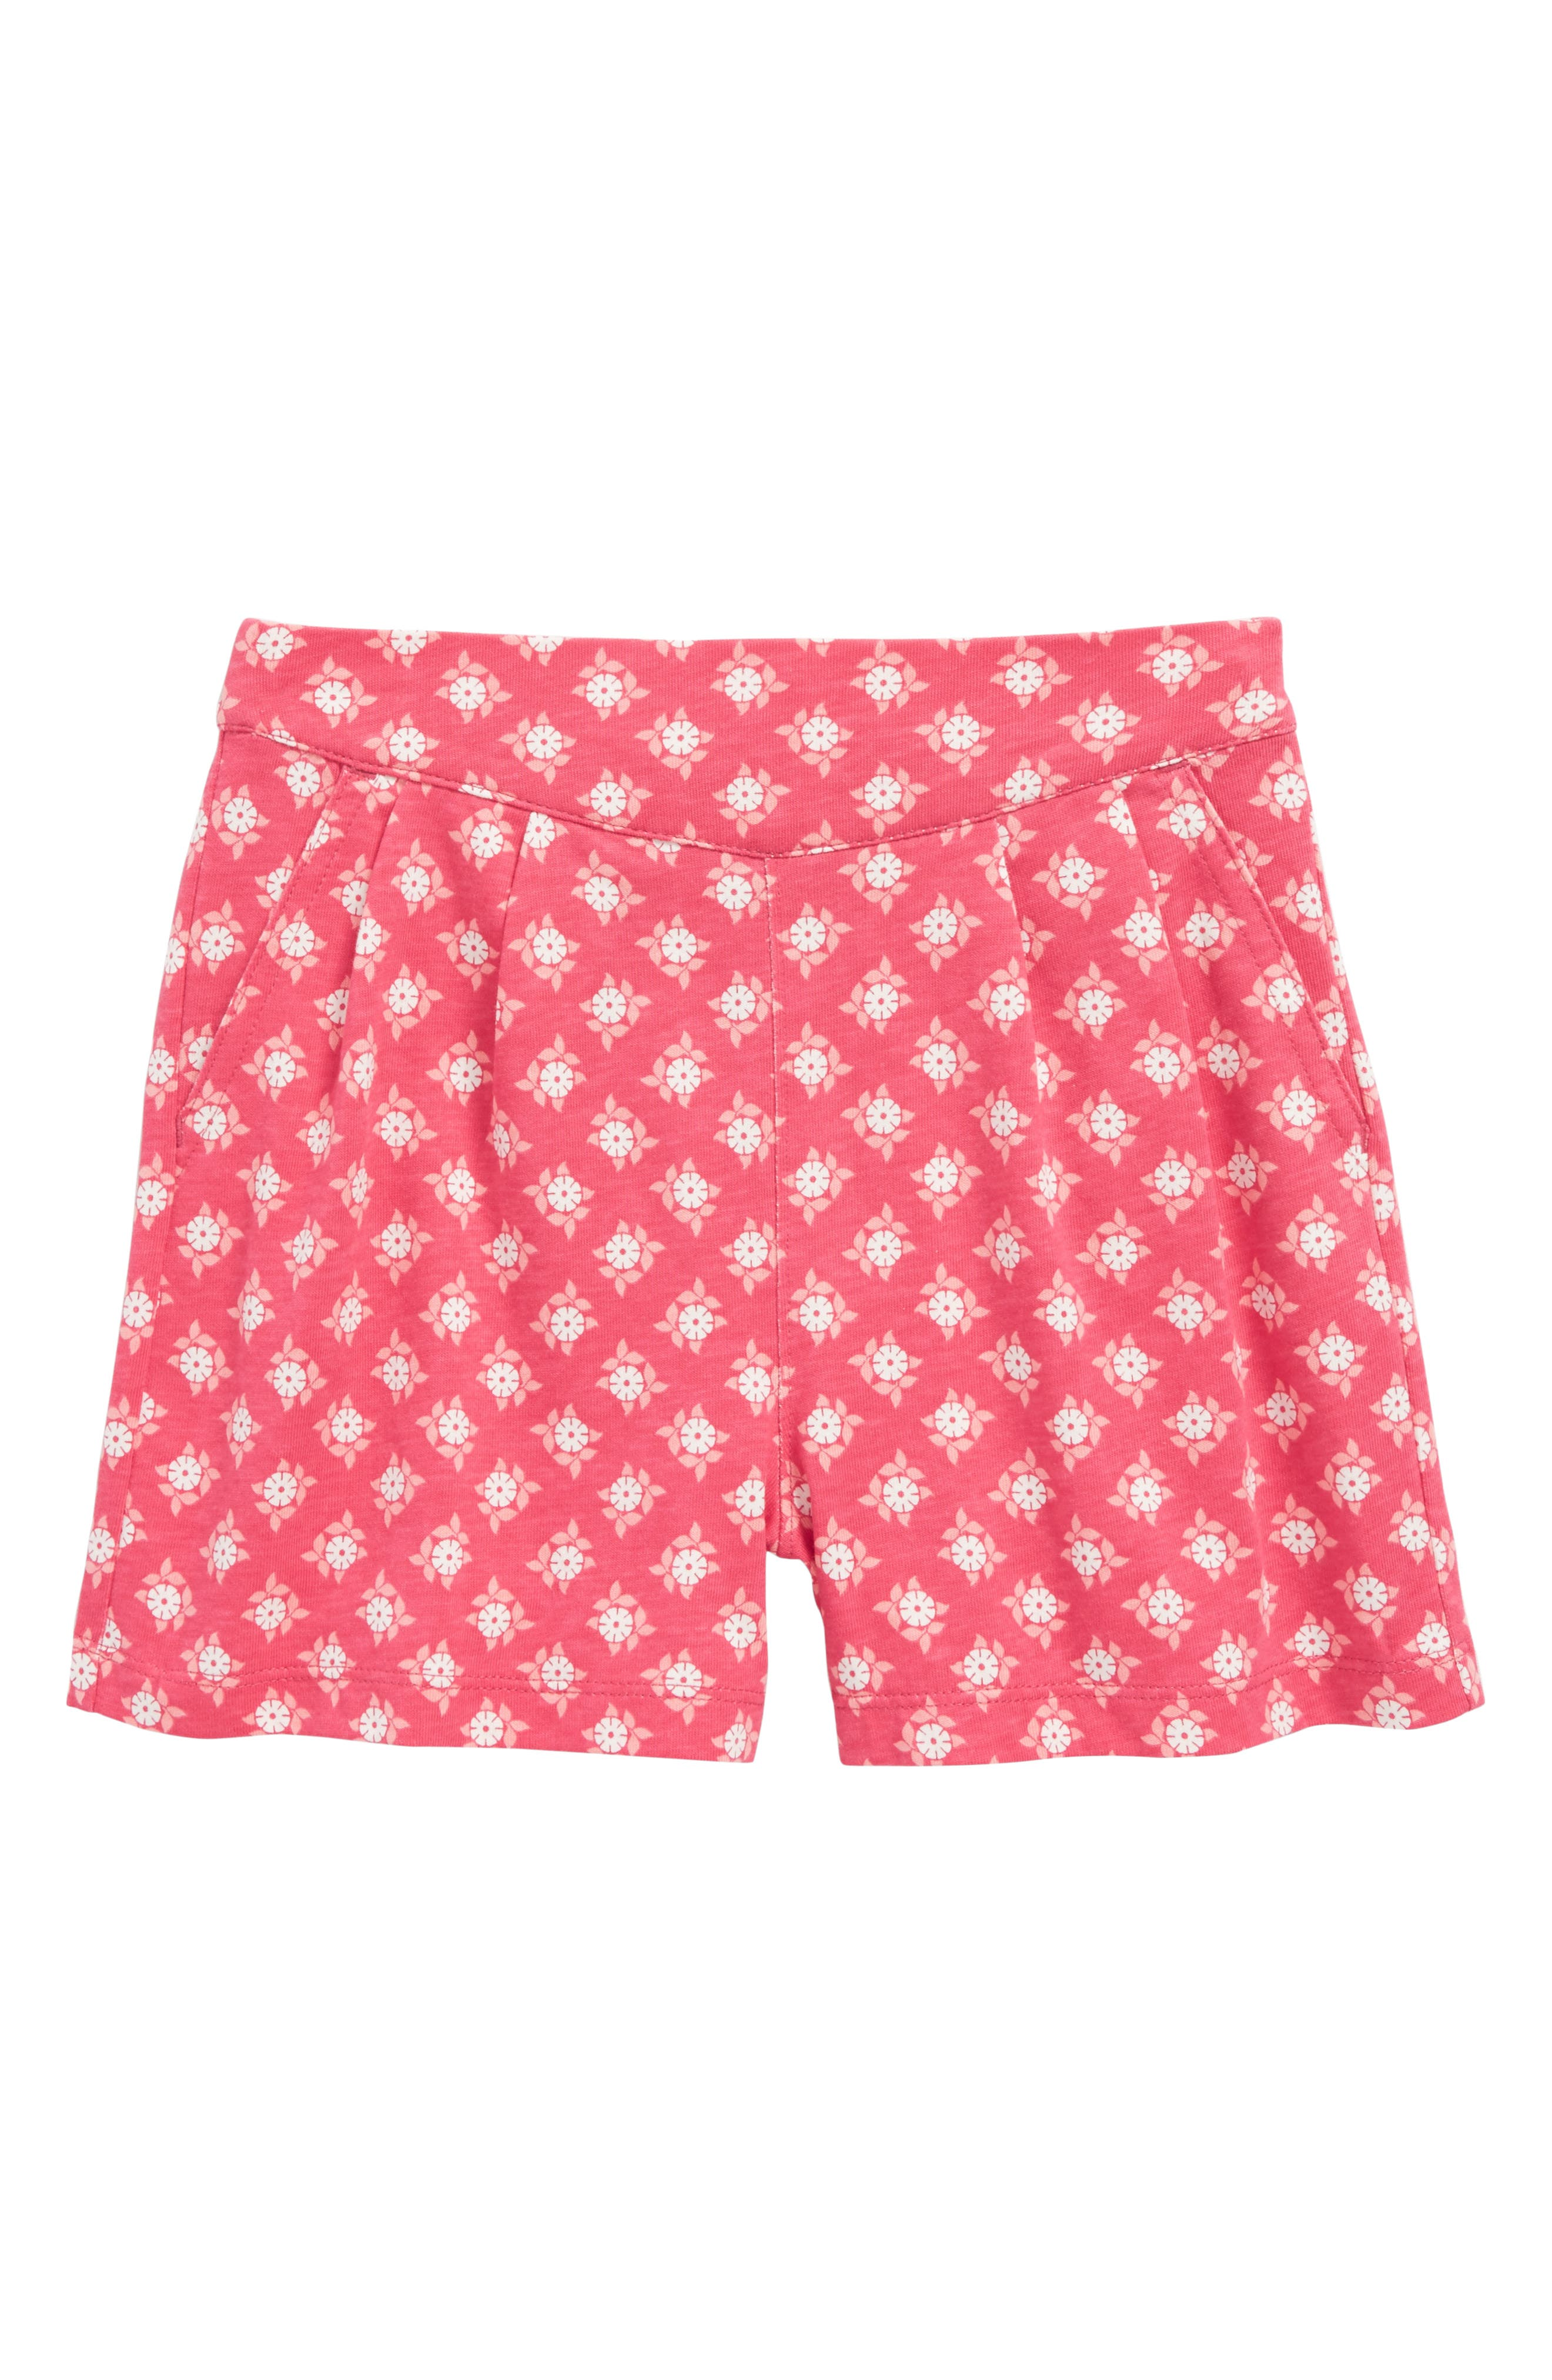 Sunburst Deck Shorts,                         Main,                         color, 650